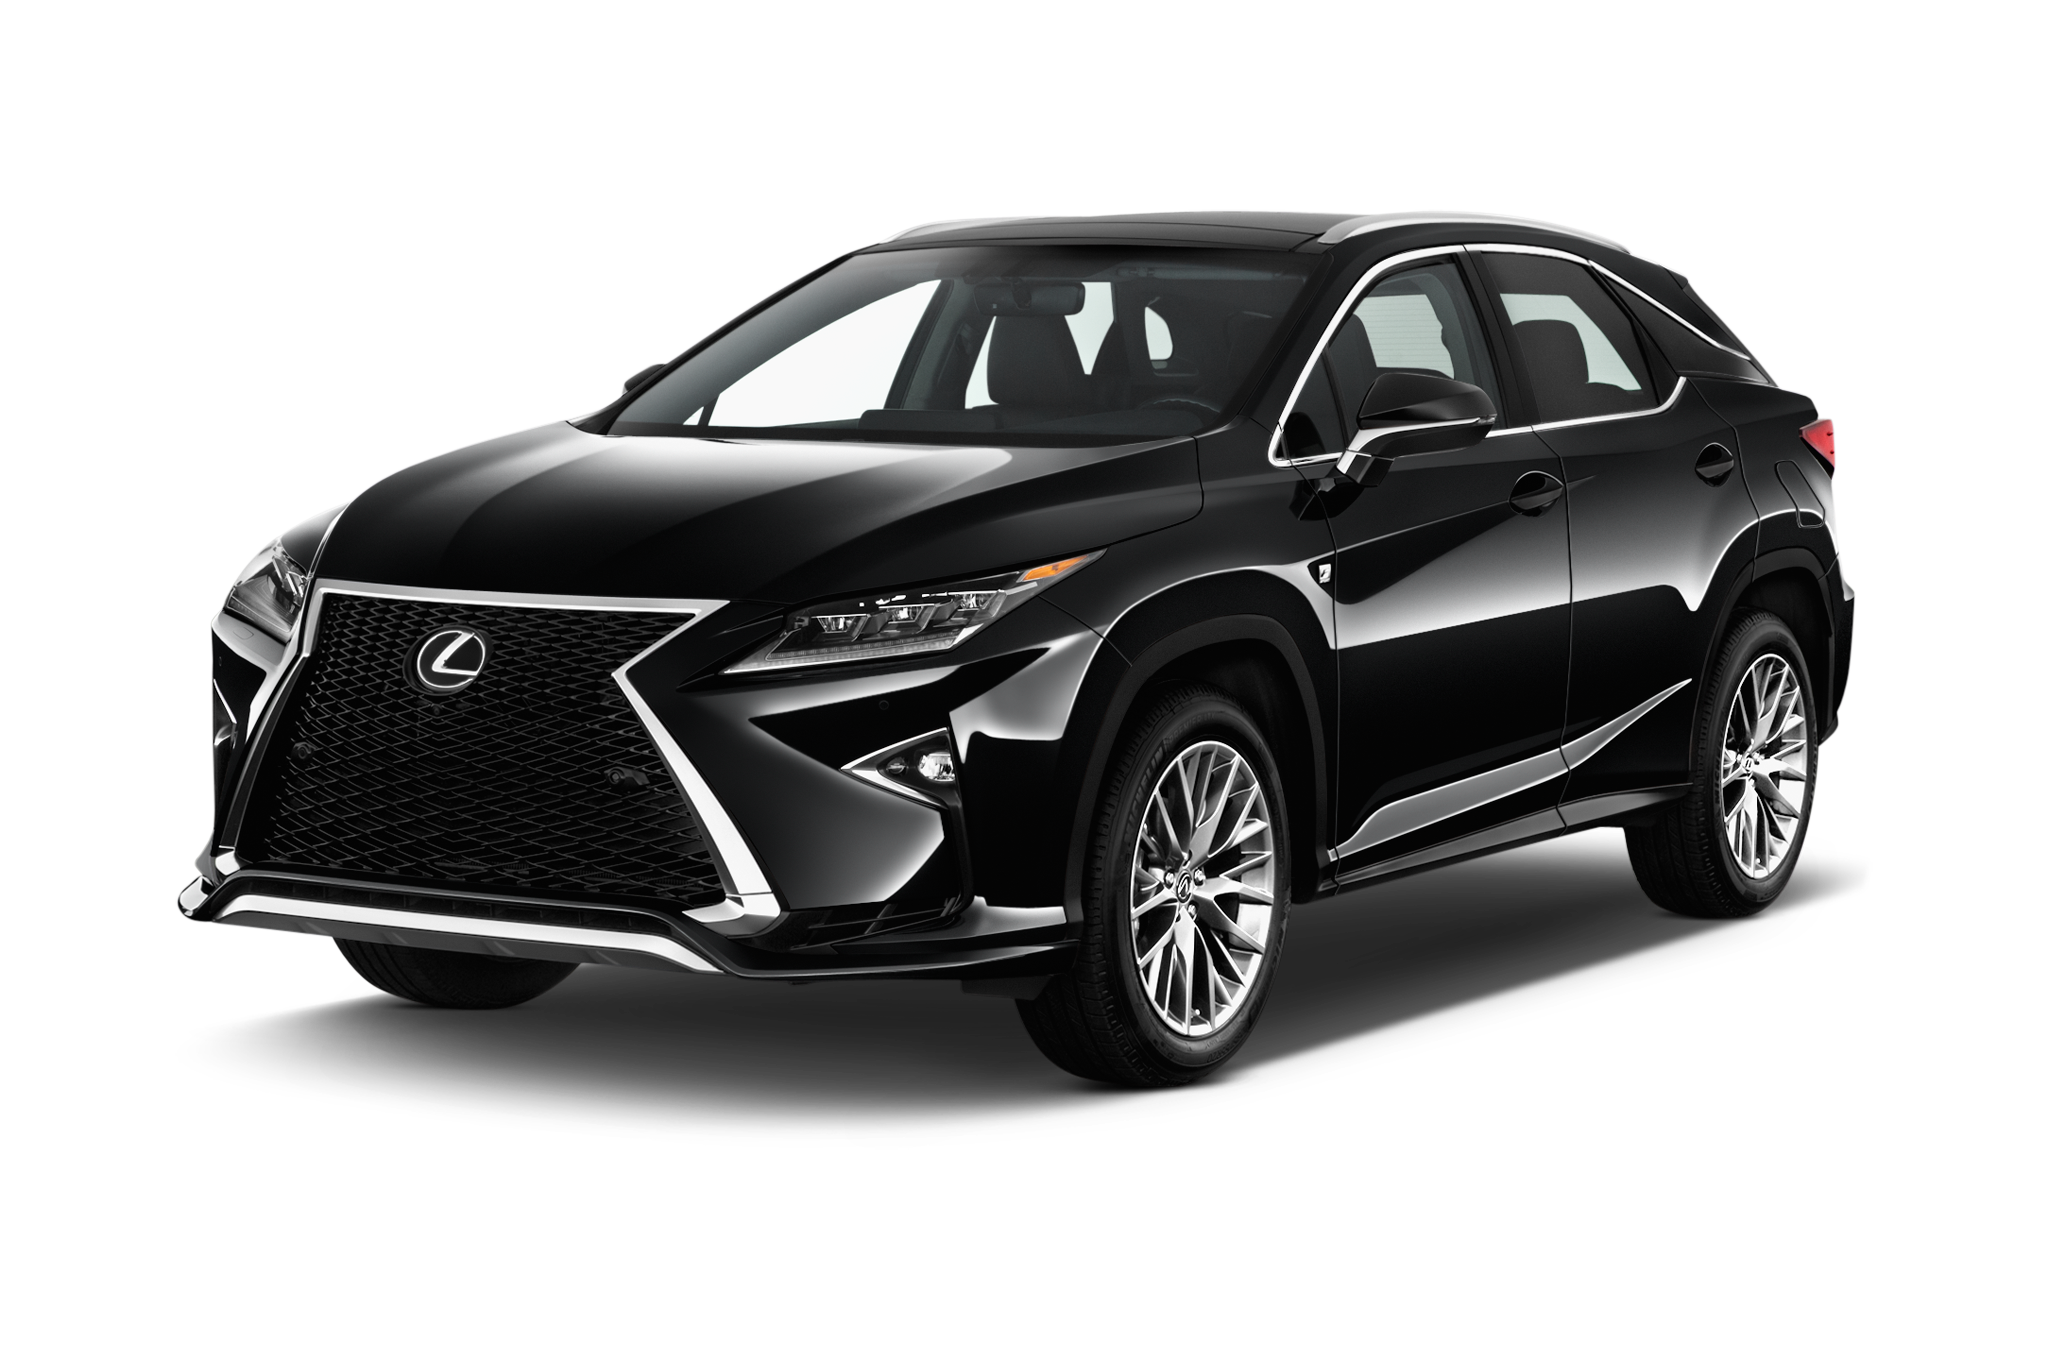 lexus exec says sedans must evolve to survive in report automobile magazine. Black Bedroom Furniture Sets. Home Design Ideas